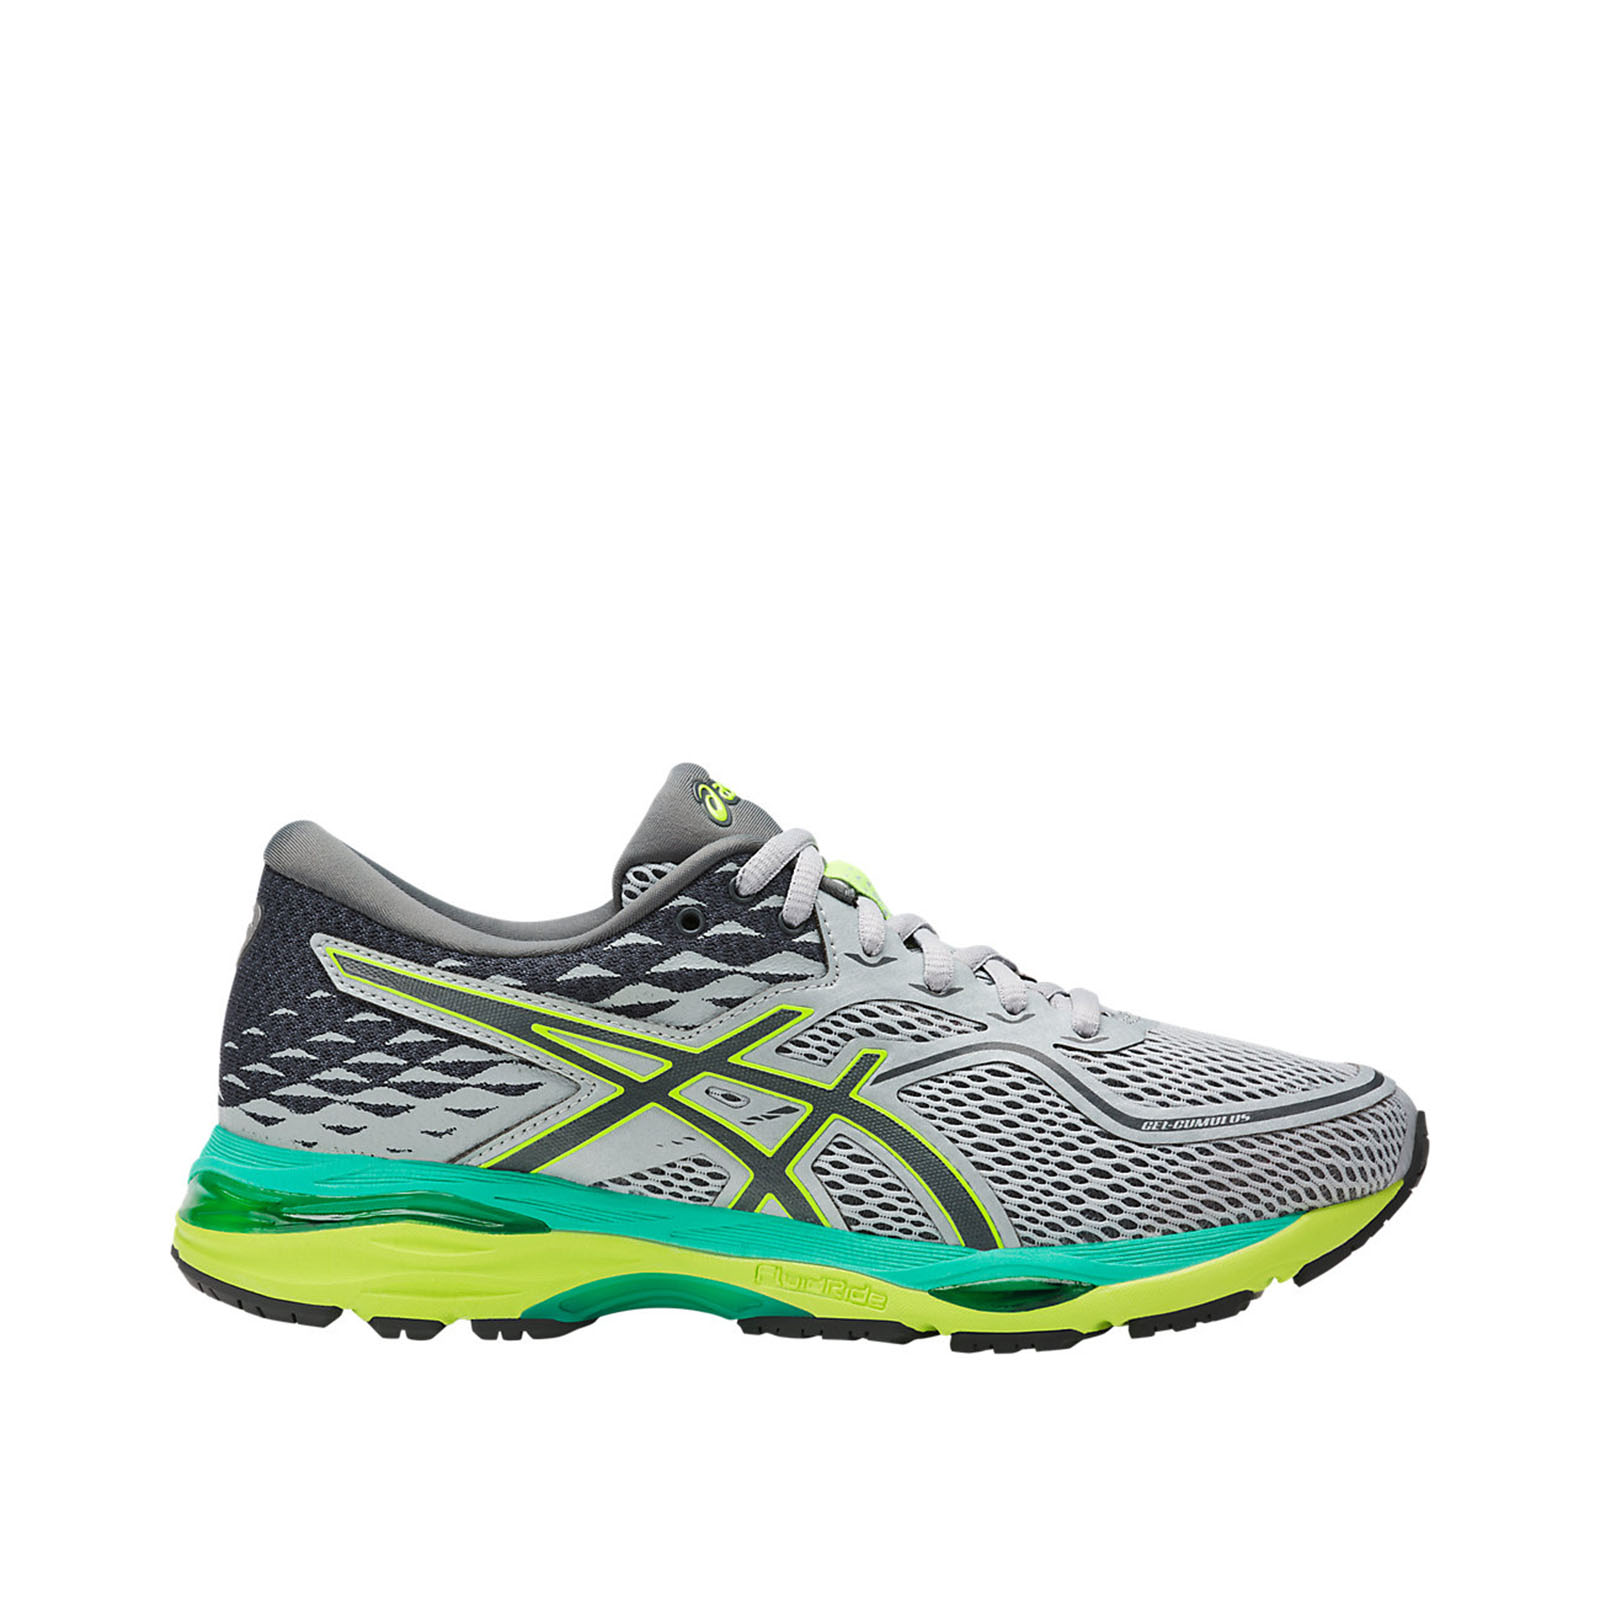 Asics GEL-Cumulus 19 [T7B8N-9697] Women Running shoes Grey Carbon-Safety Yellow